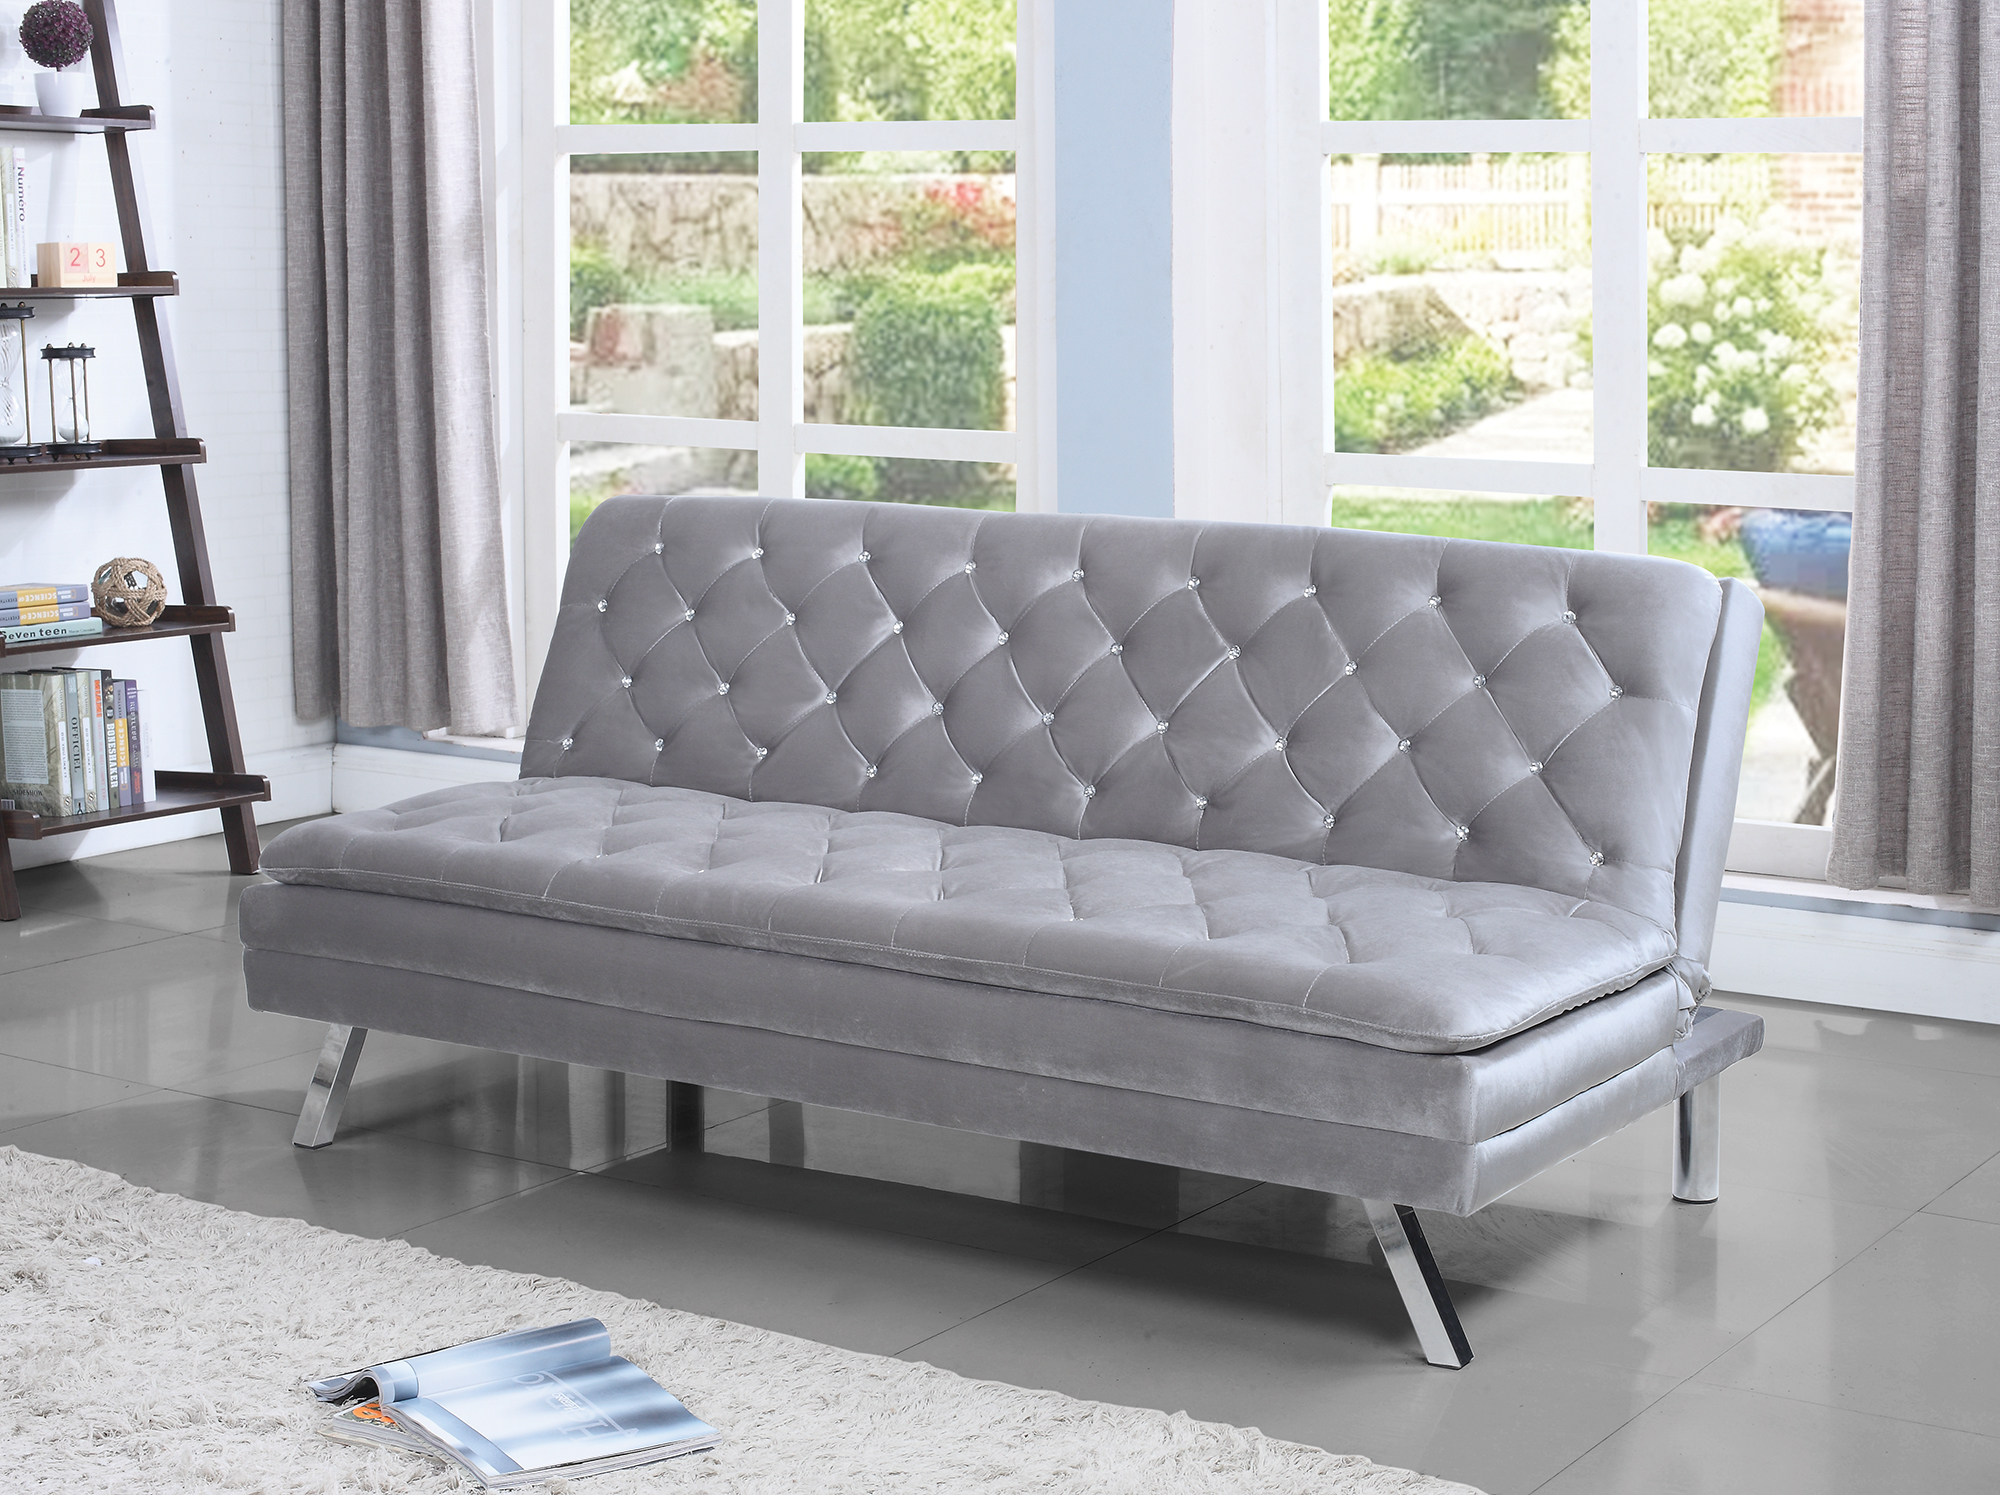 coaster fabric sofa bed with silver finish 360019 21032378080 ebay rh ebay com ebay sofa bed grey ebay sofa bed melbourne